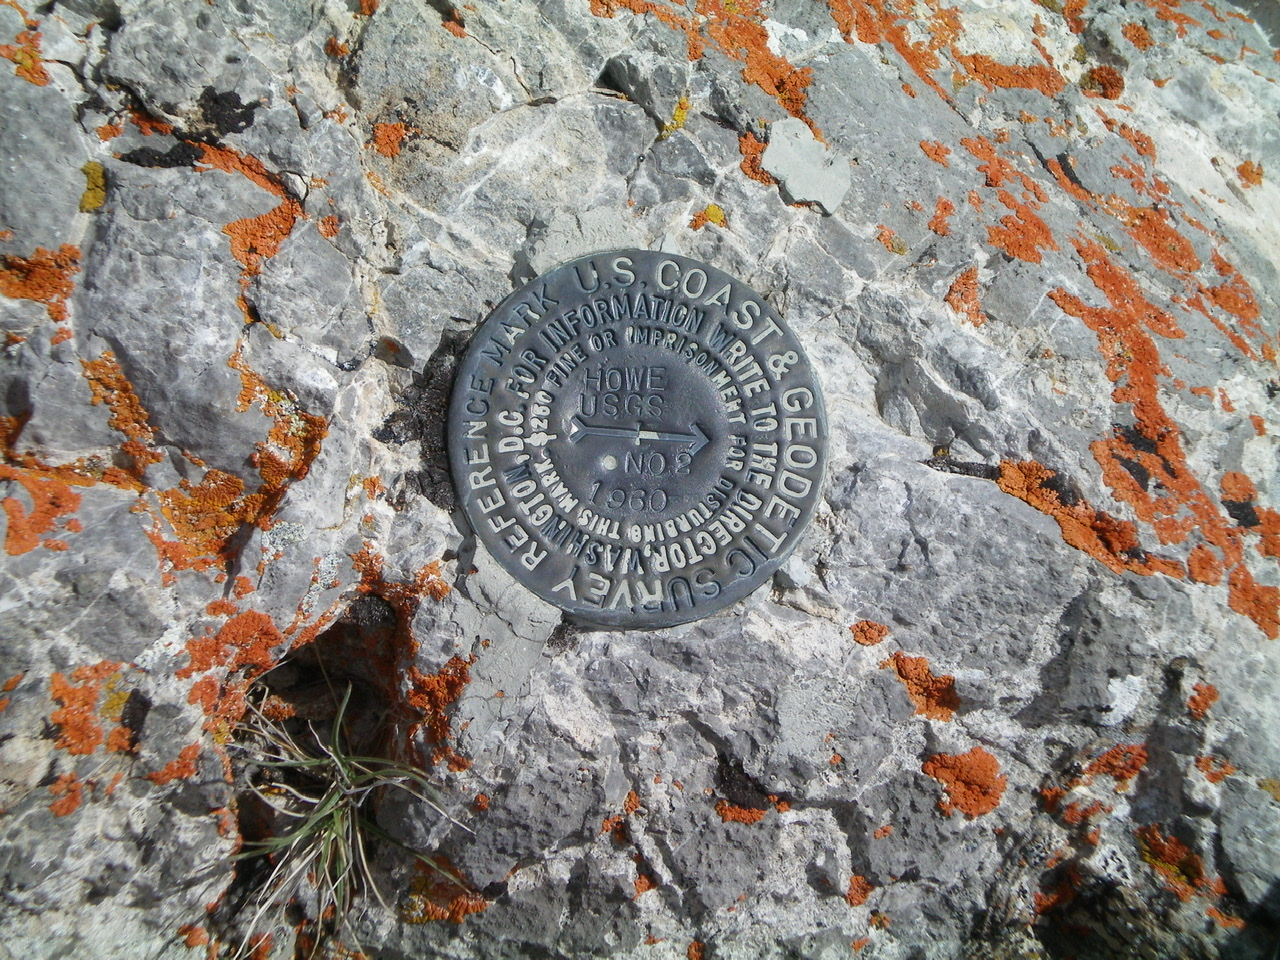 The USGS Benchmark atop Howe Peak. Livingston Douglas Photo